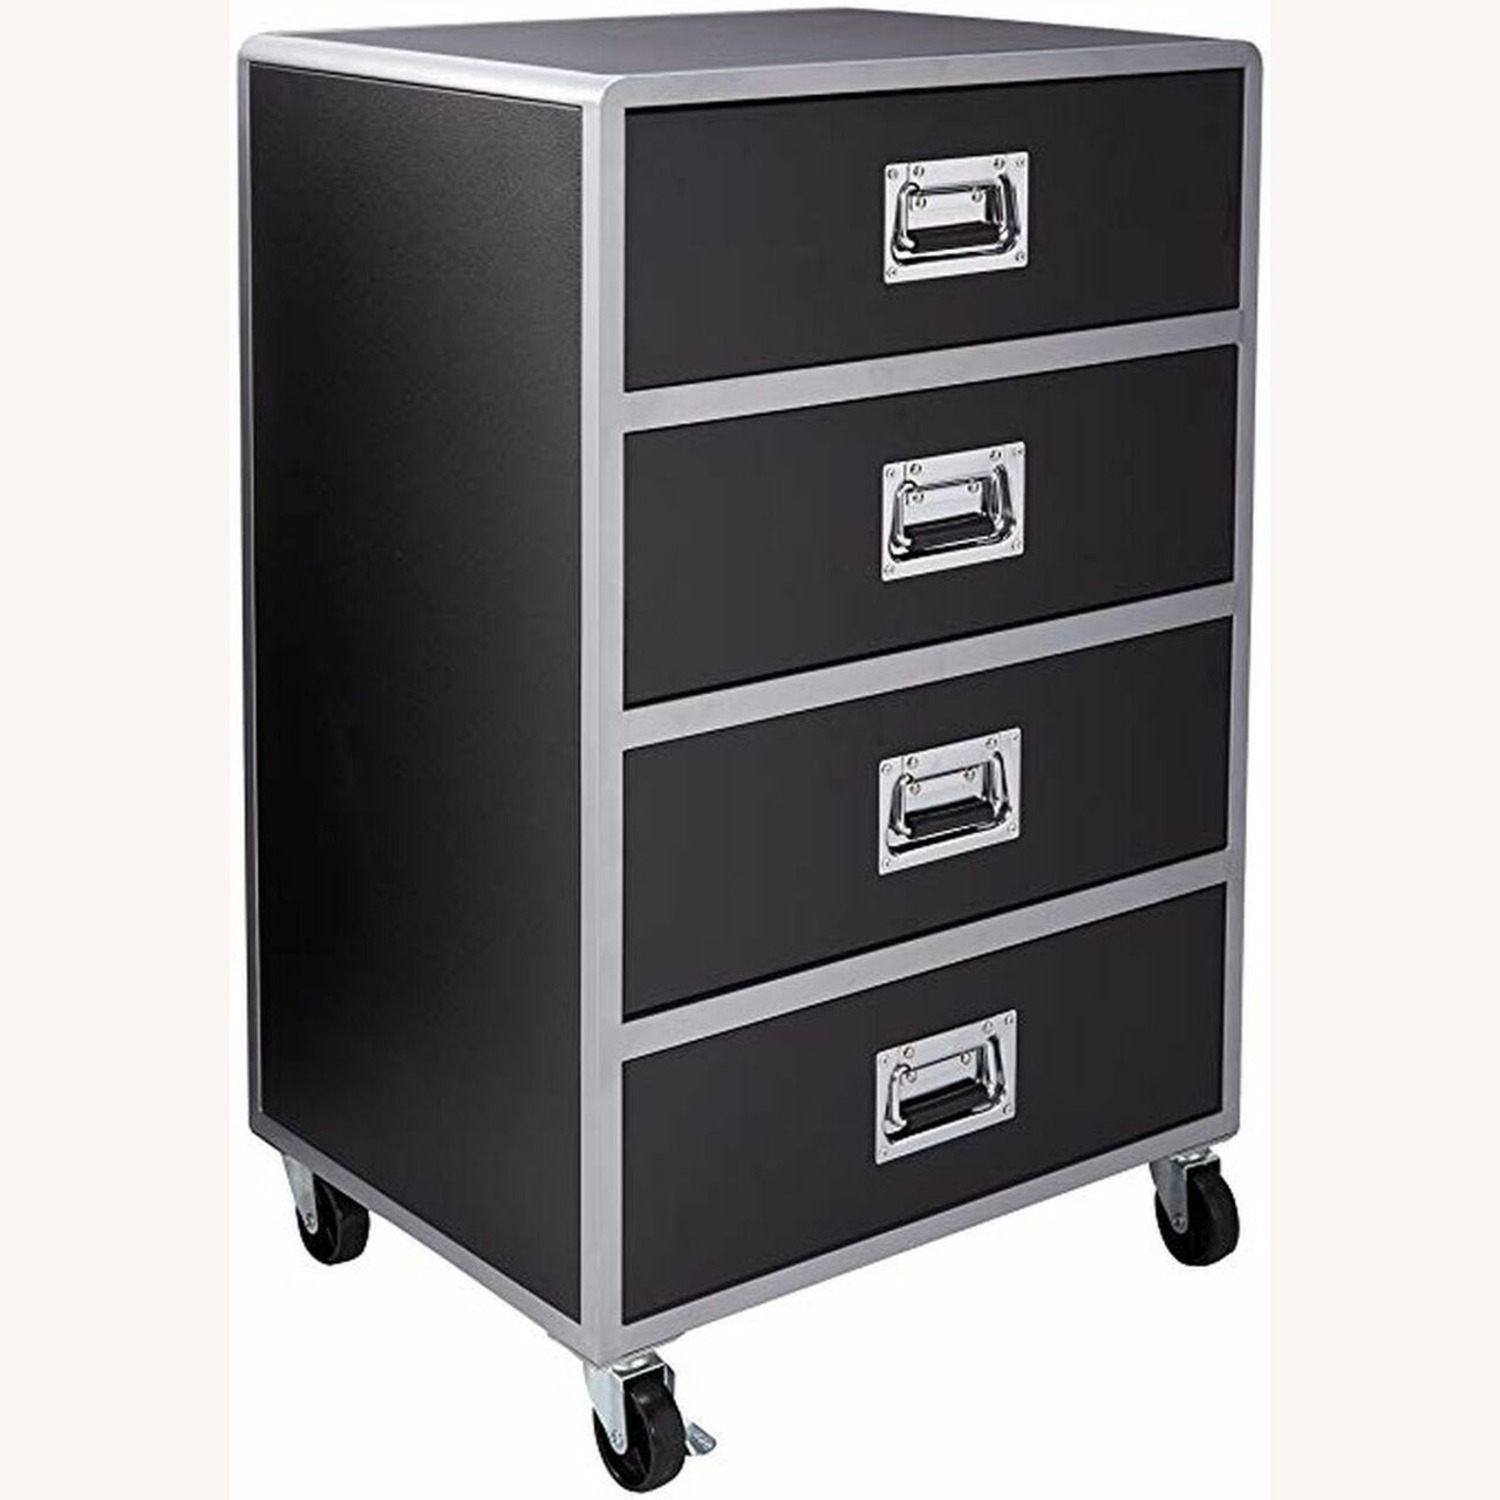 Chest In Black & Silver Finish W/ Lockable Casters - image-0